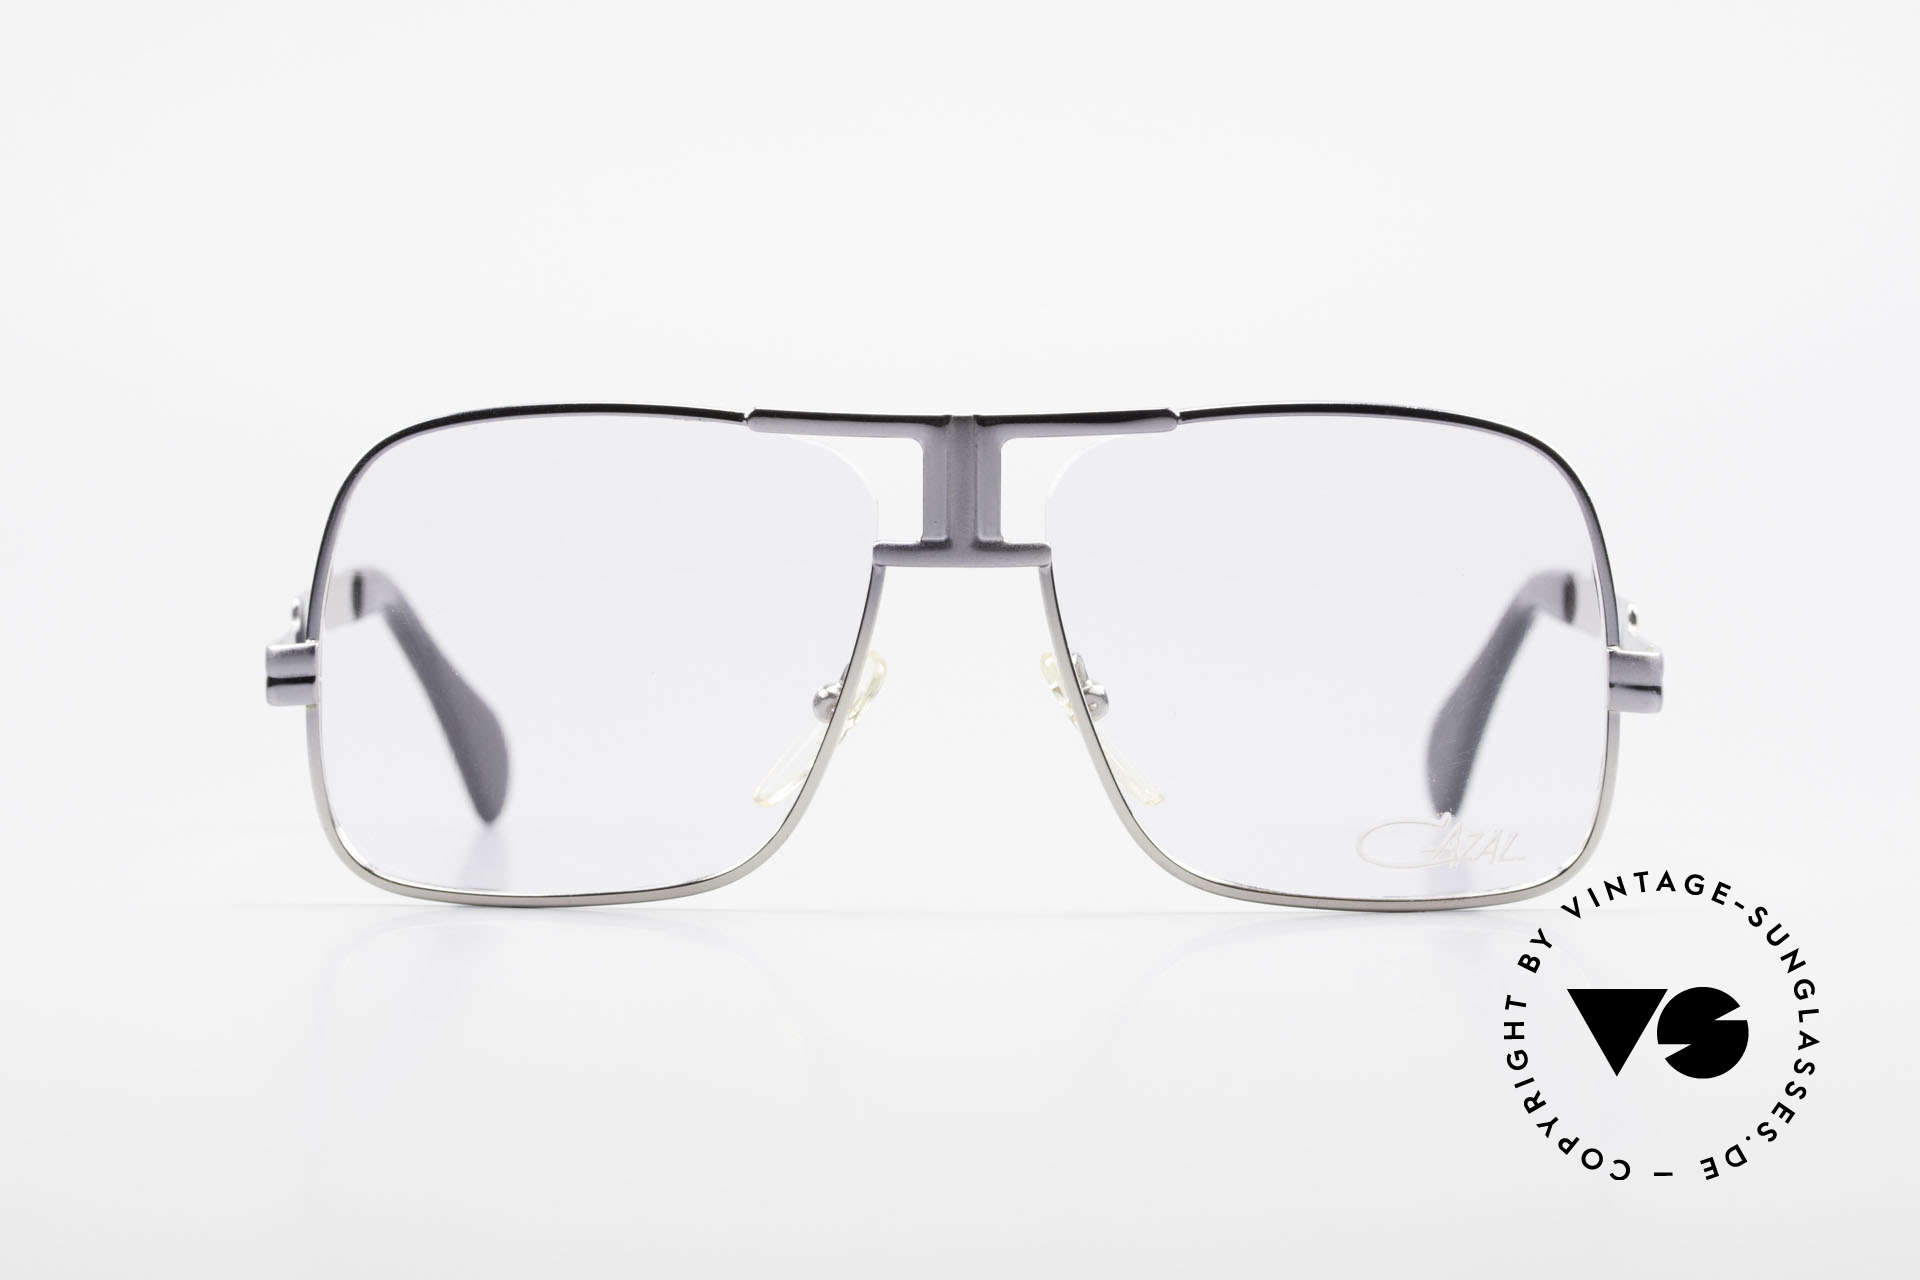 Cazal 701 Ultra Rare CAzal 70's Glasses, monolithic quality, built to last, made in Germany, Made for Men